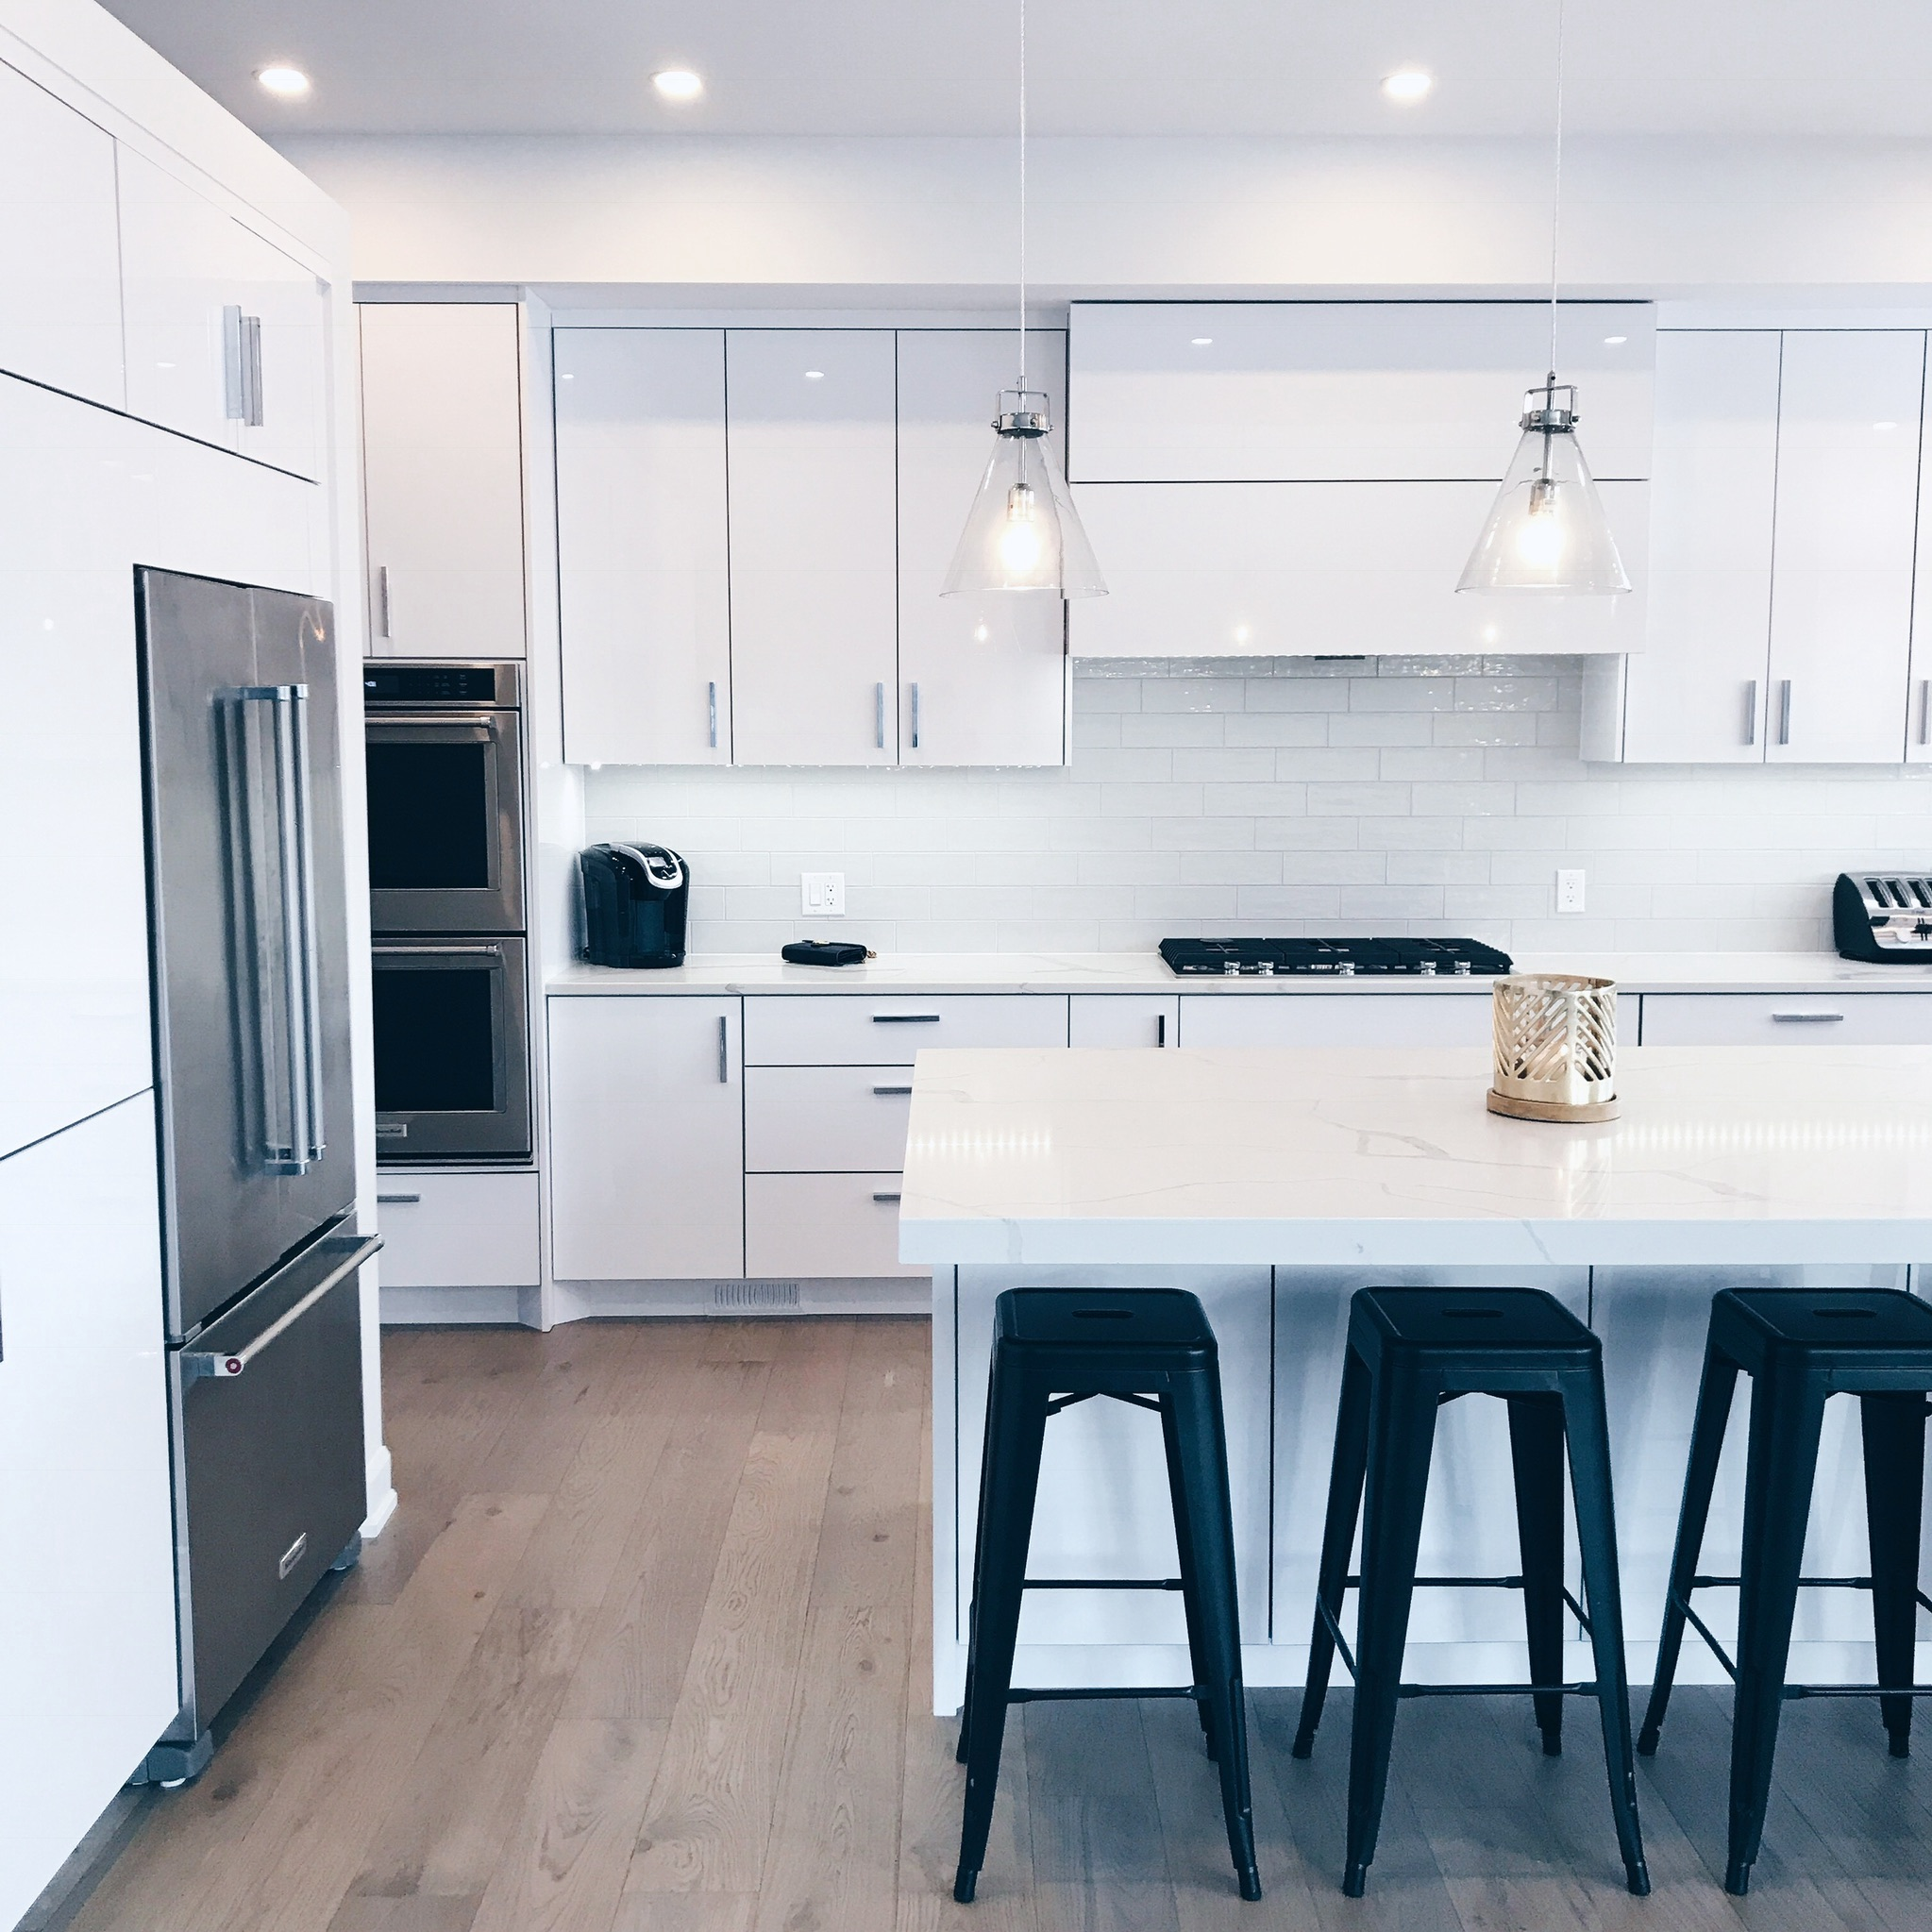 life-with-aco-kitchen-home-decor-ottawa-blogger